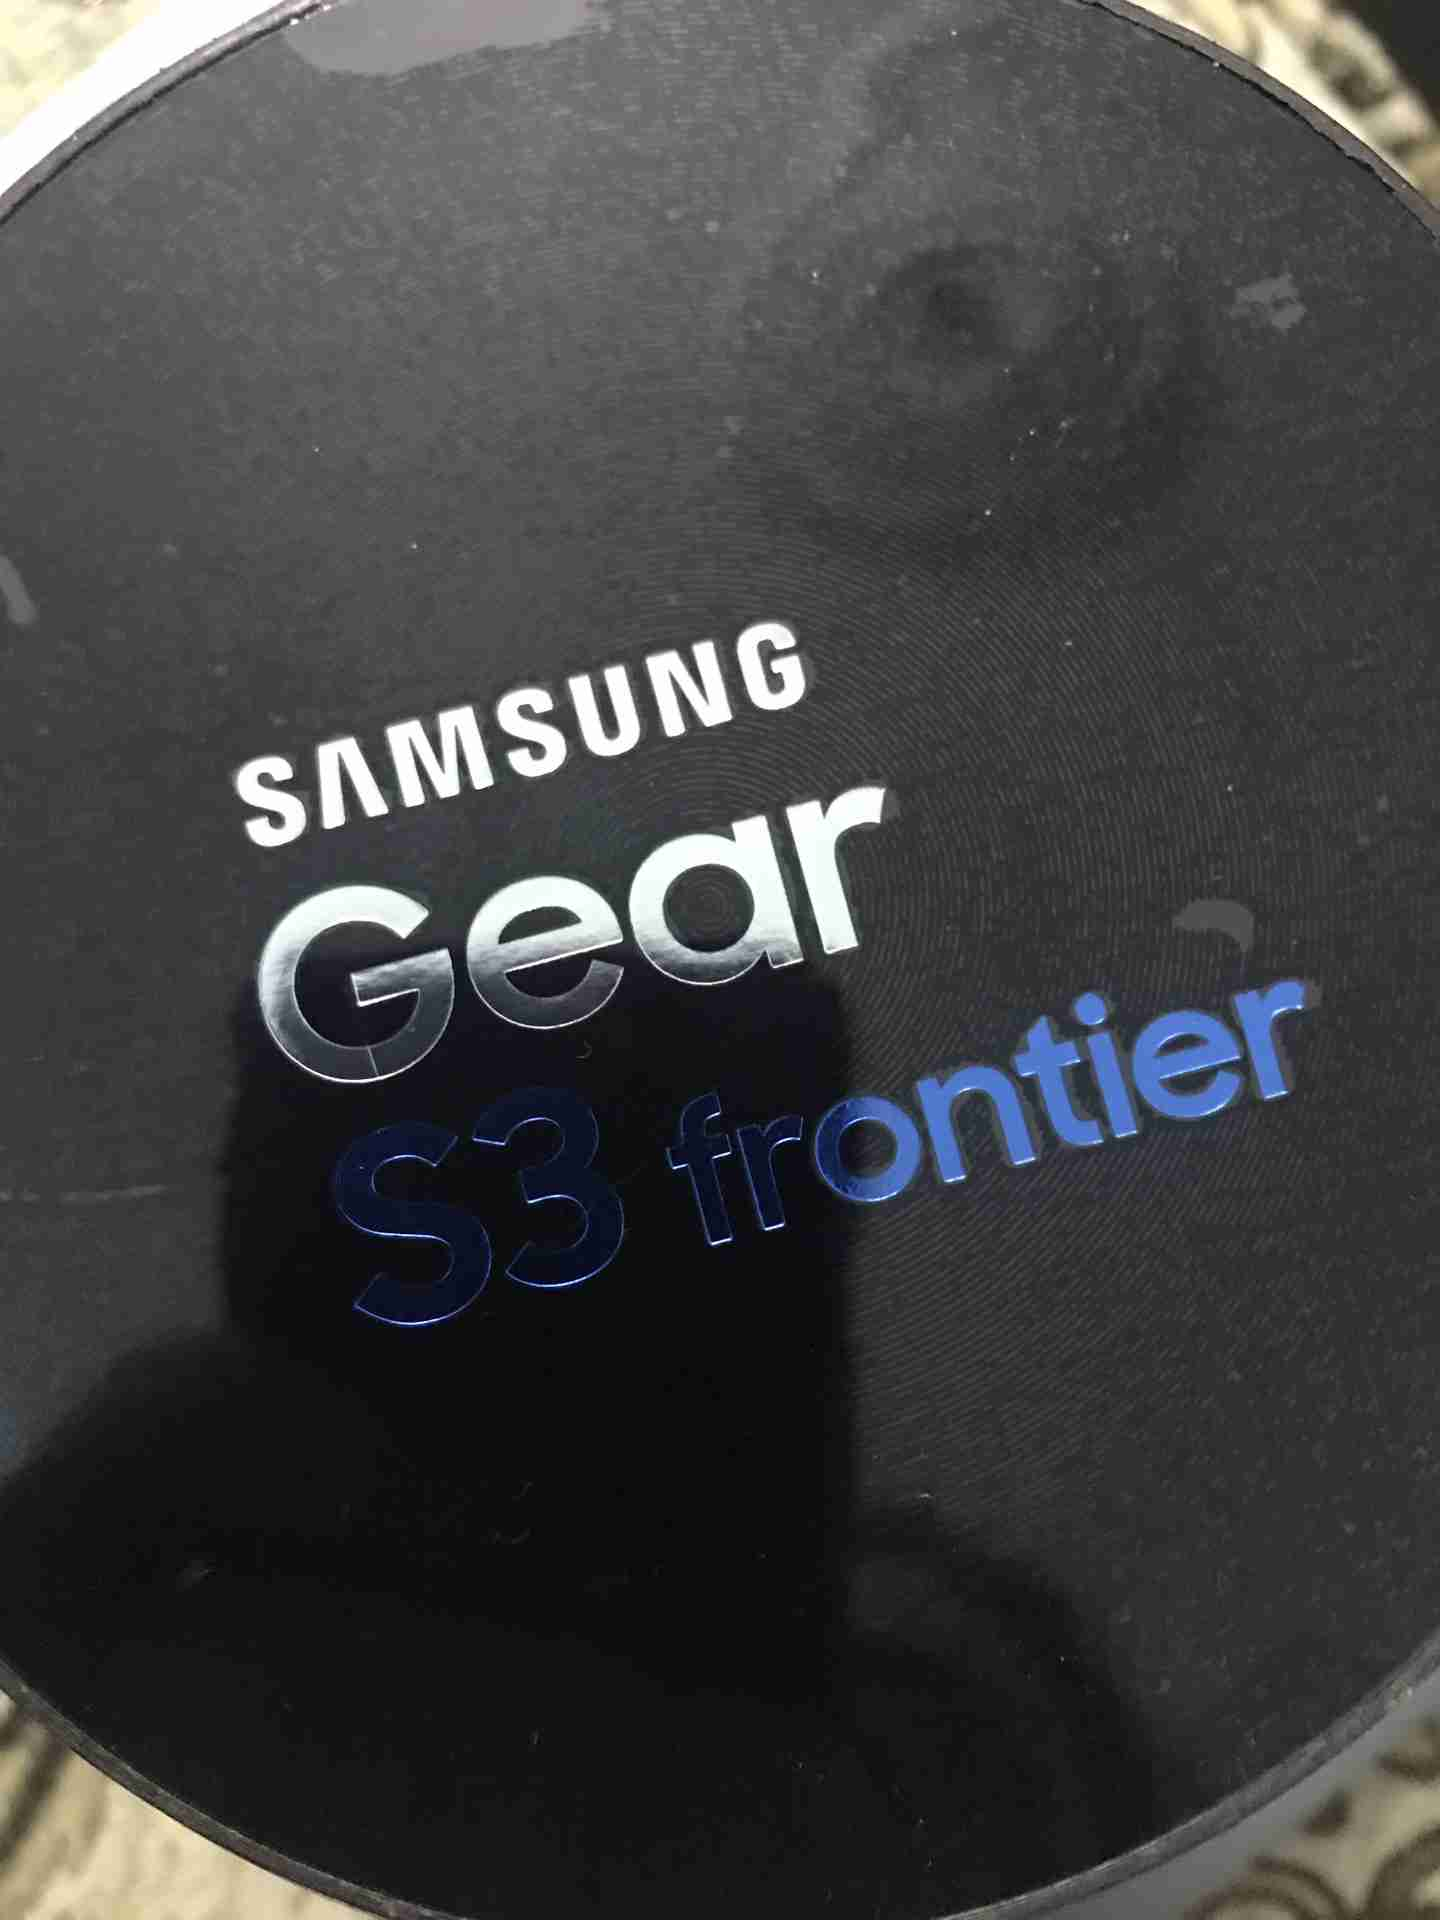 gear s3 frontier and gear fit 2 pro...